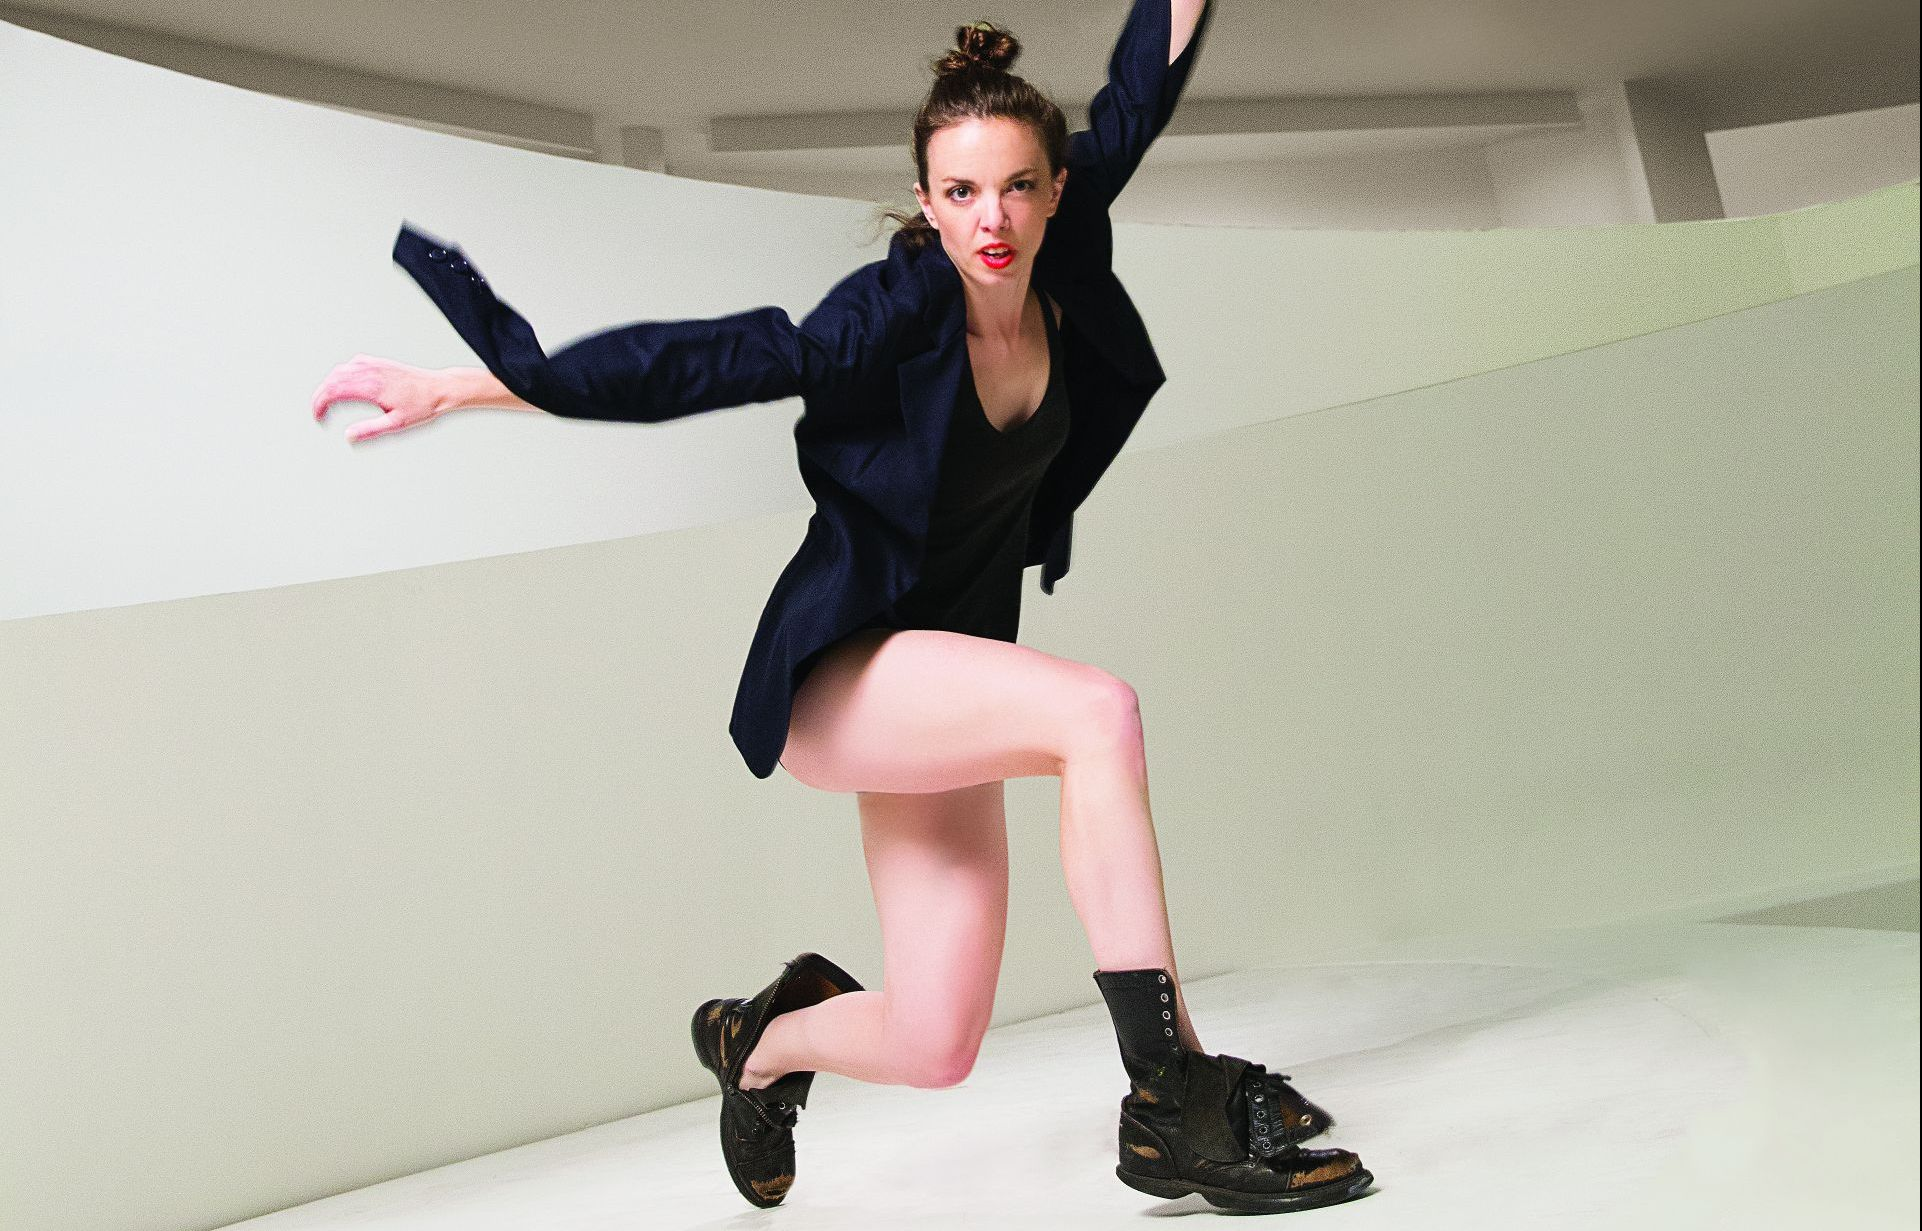 The Future of Tap Dance - This month, we are so honored to feature Michelle Dorrance, a NYC-based tap dancer, choreographer, director, teacher and performer. She is also the founder and Artistic Director of Dorrance Dance, whose work aims to honor tap dance's uniquely beautiful history in a new, dynamic, and compelling context.Photo by Erin Baiano.